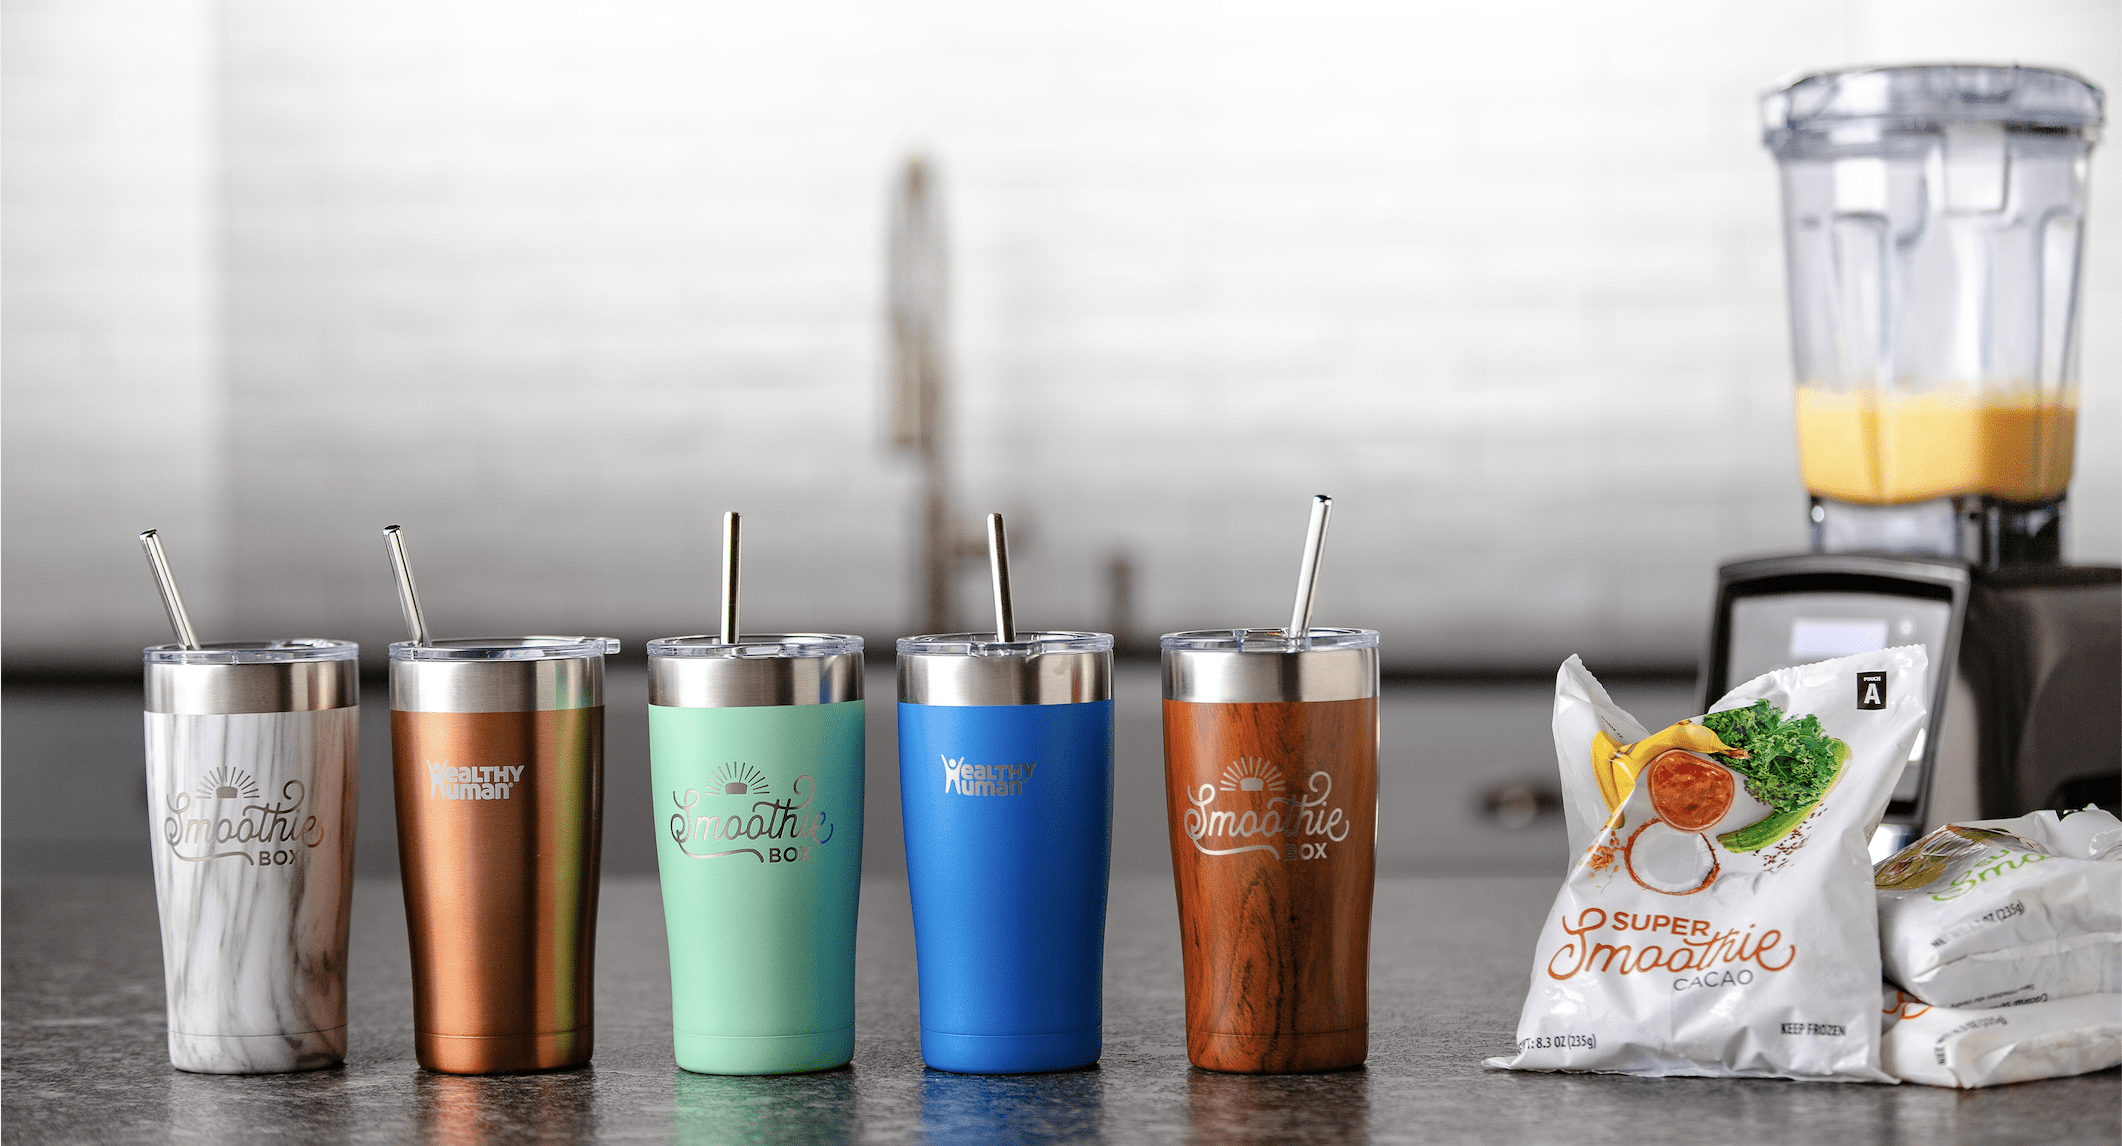 SmoothieBox Sale: Get Free Insulated Travel Mug + $10 Off For Life!